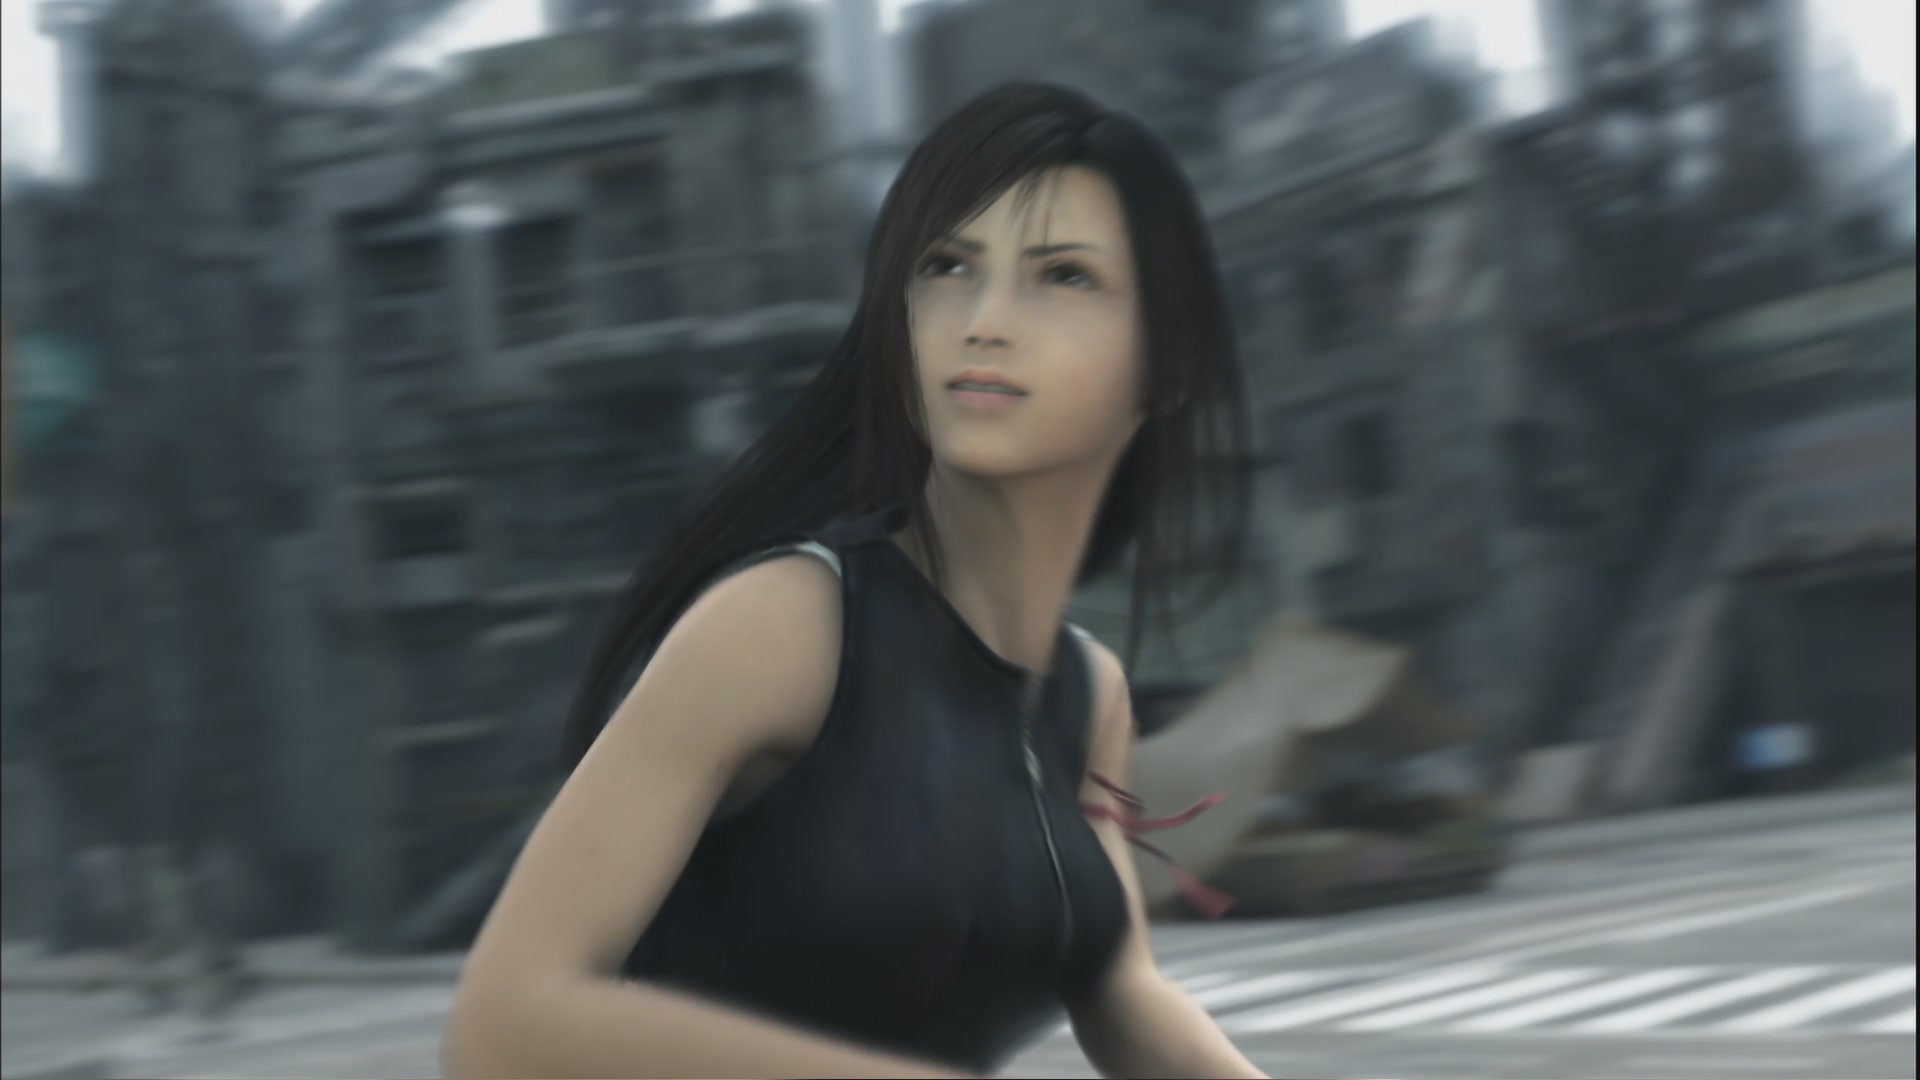 image - final-fantasy-vii-advent-children-tifa-lockheart-1920x1080